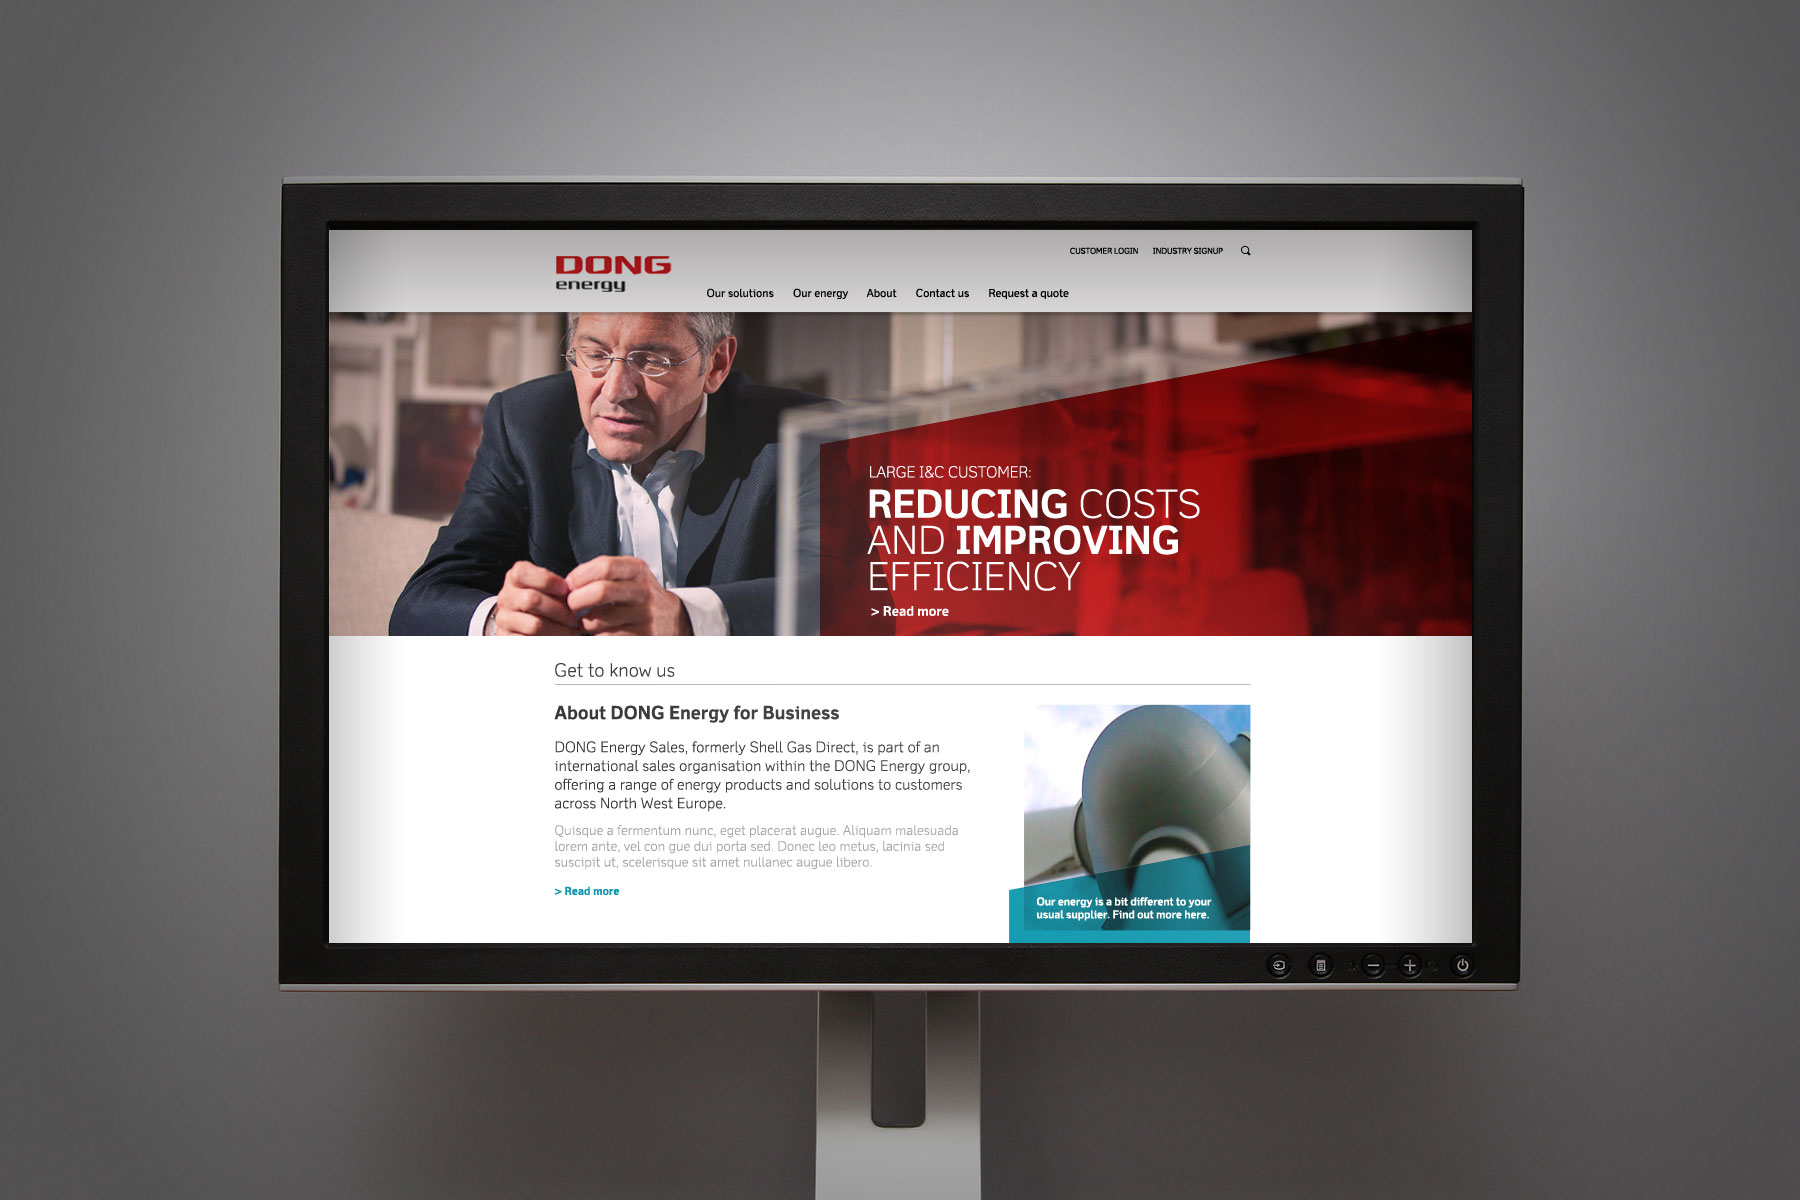 The new homepage - to add interest, the graphic devices are often combined with cut-out photography. Imagery focuses on people, as research reveals that DONG Energy for Business is a people-centred brand.